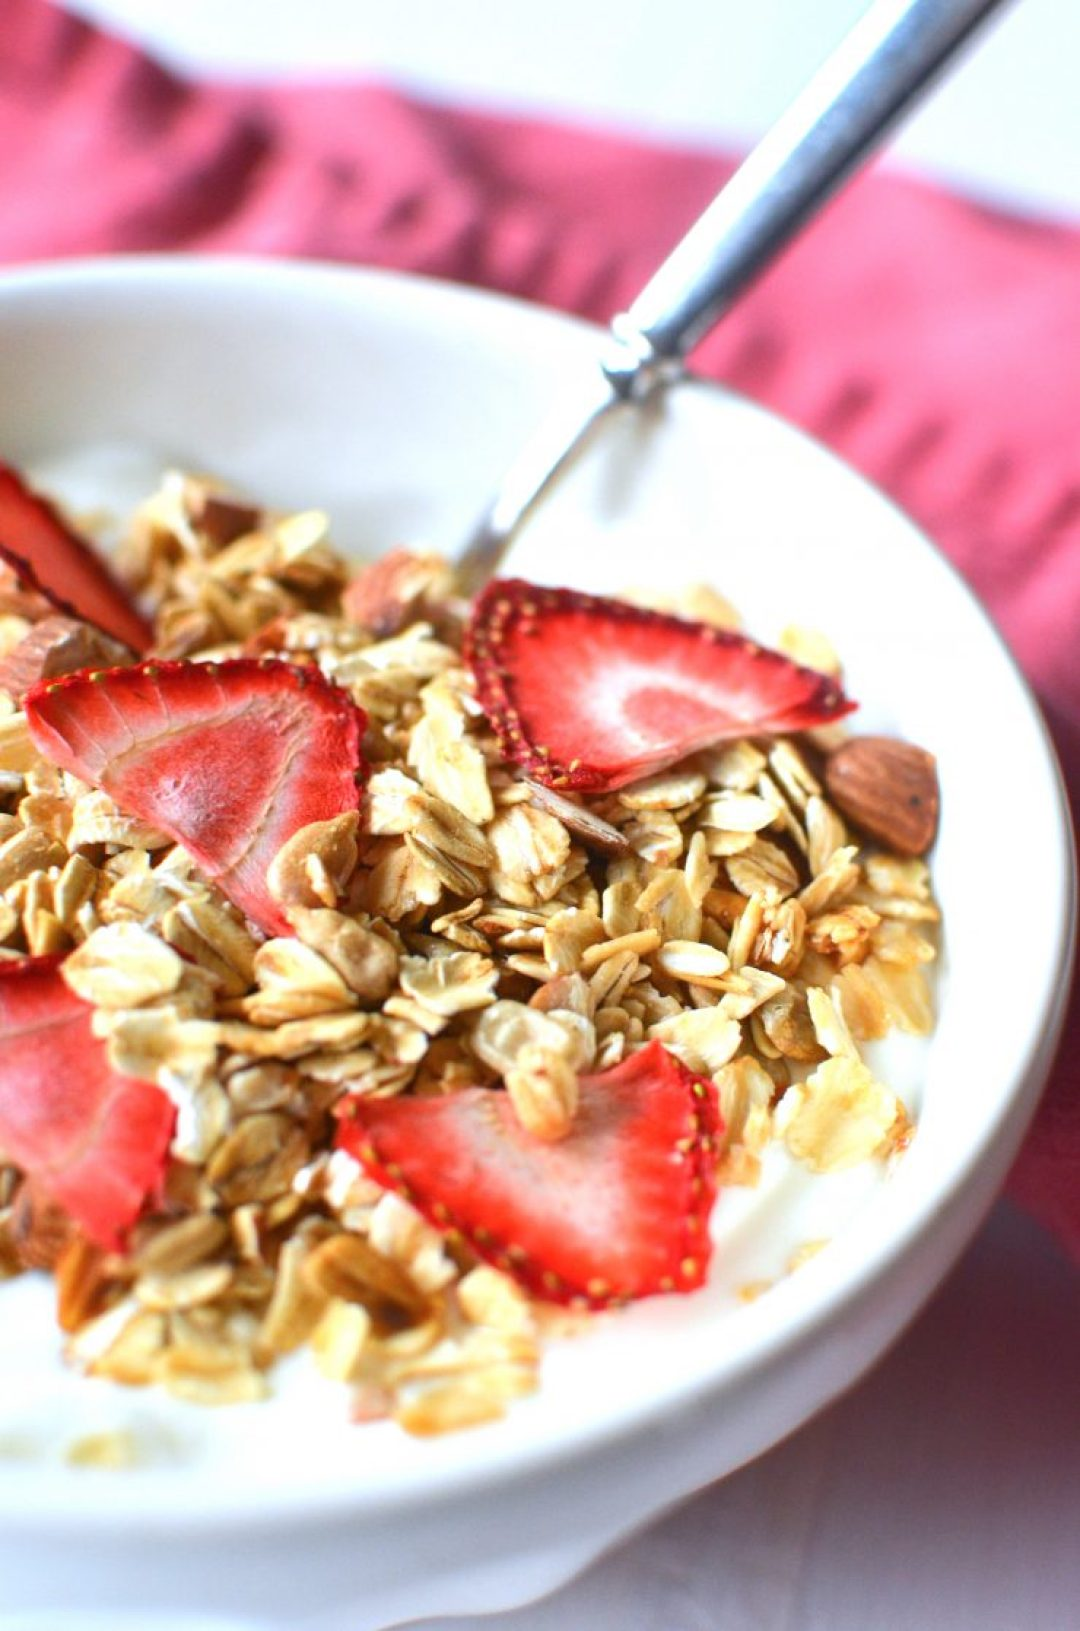 a bowl of granola with dehydrated strawberries